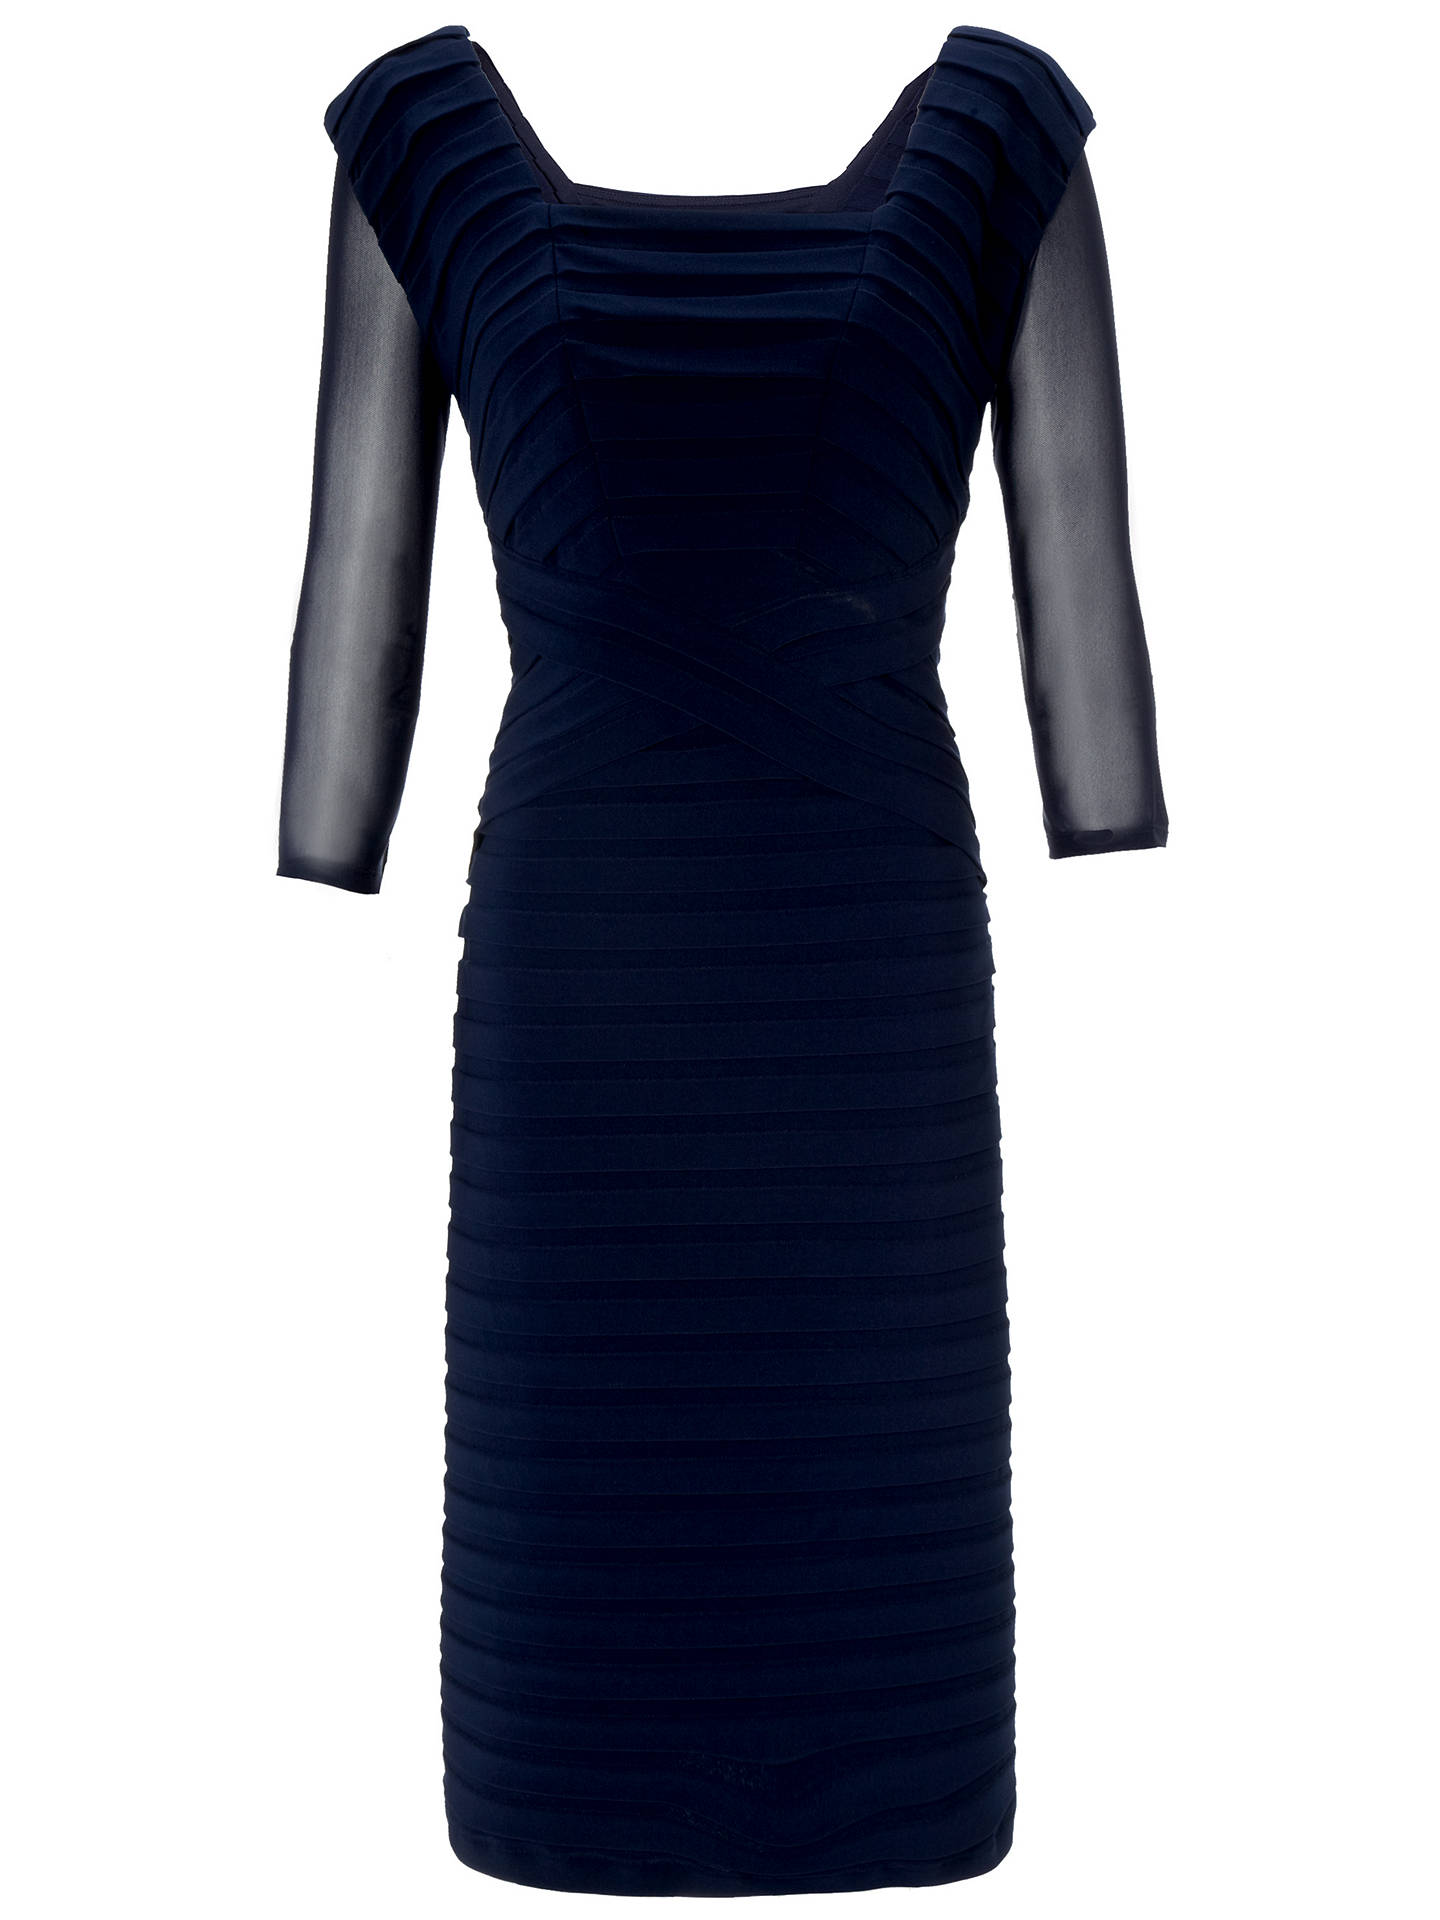 BuyGina Bacconi Mesh Sleeve Under Top, Navy, XS Online at johnlewis.com